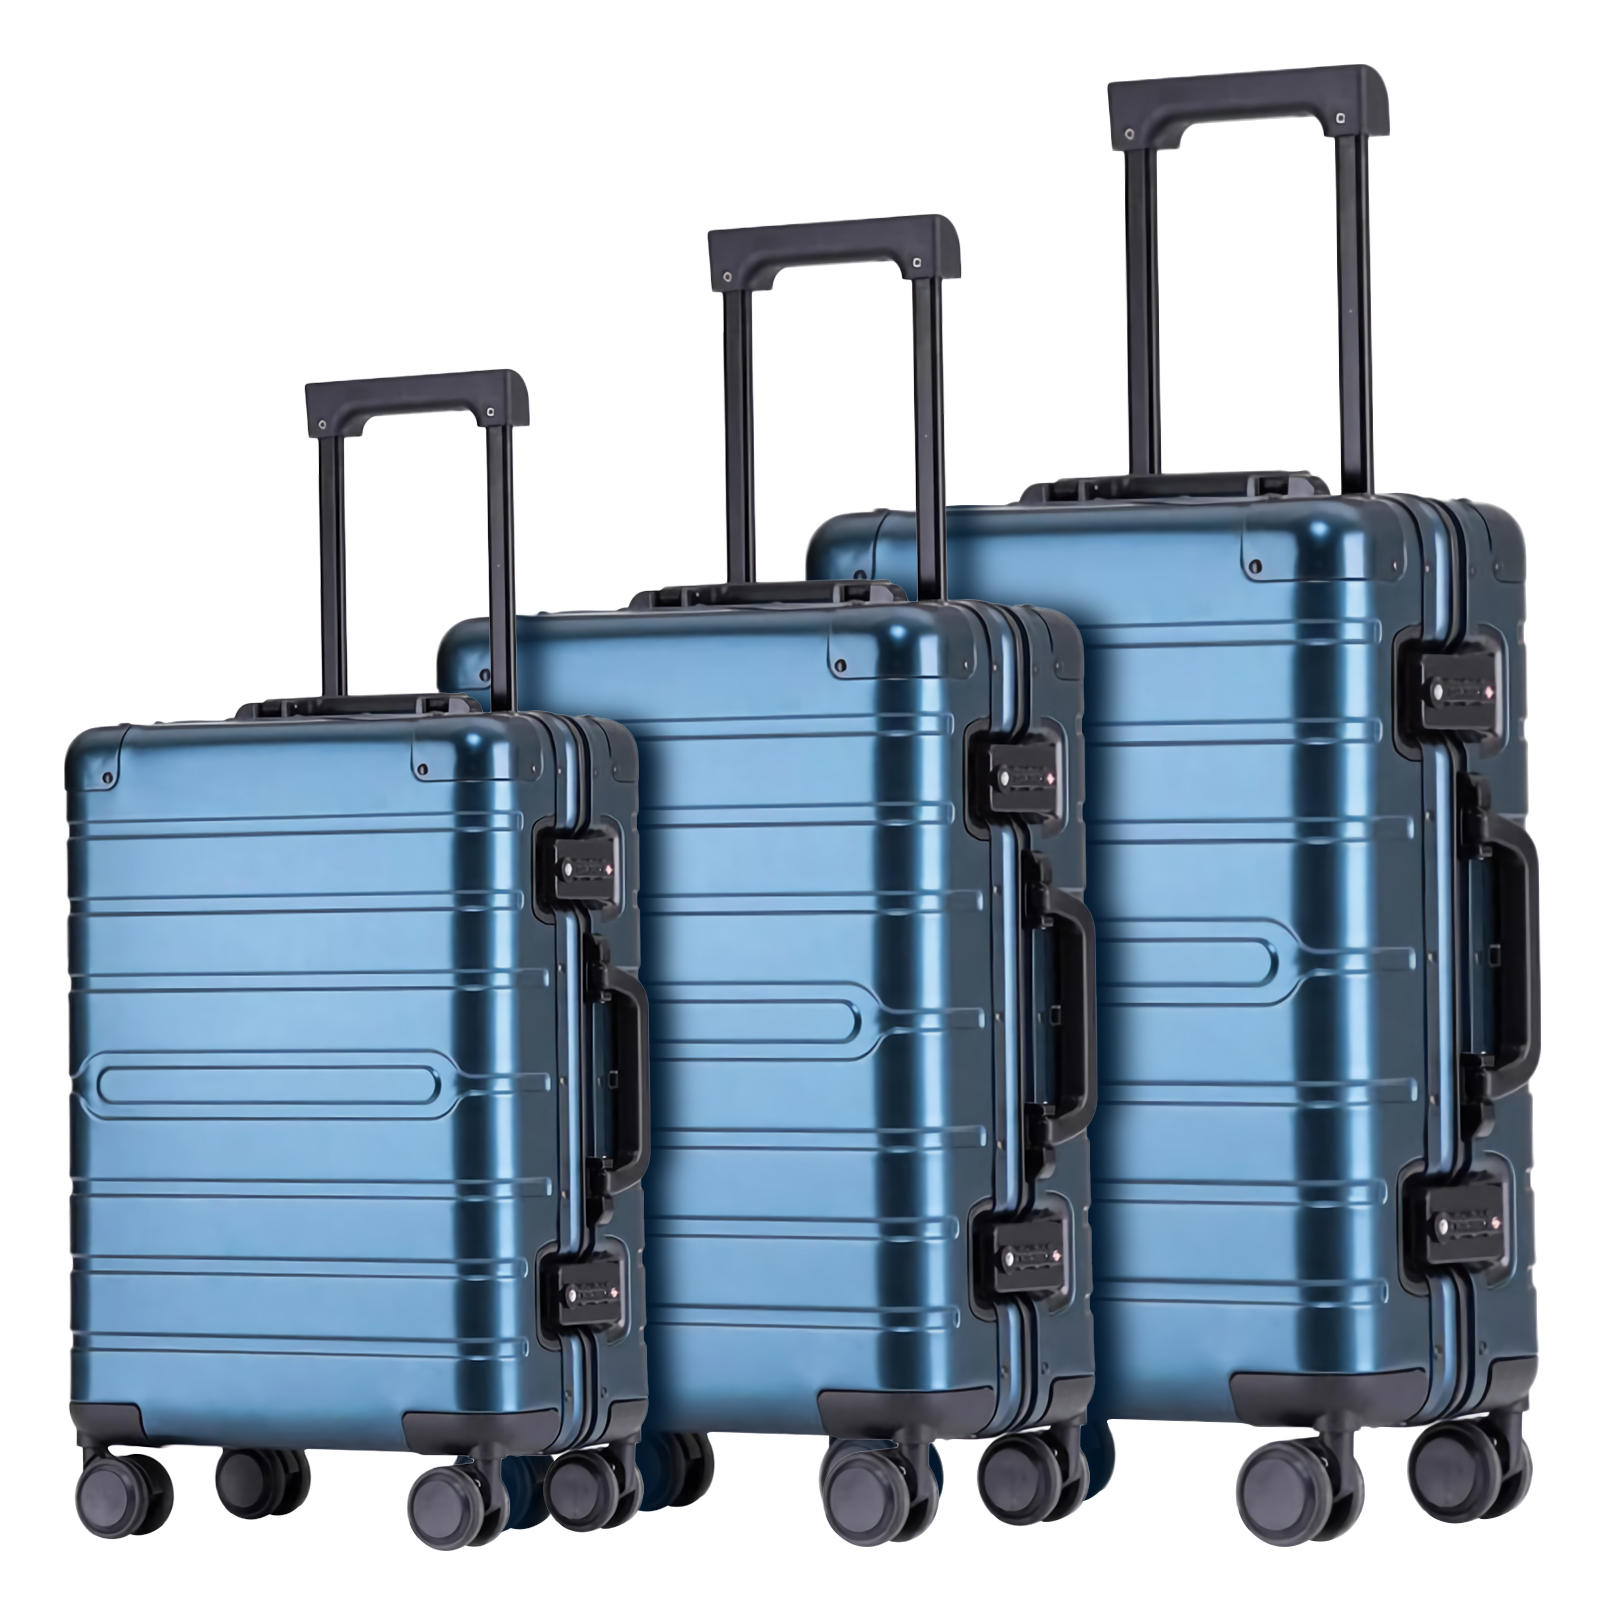 Aluminum-magnesium alloy trolley luggage-HT-8095-Greatchip